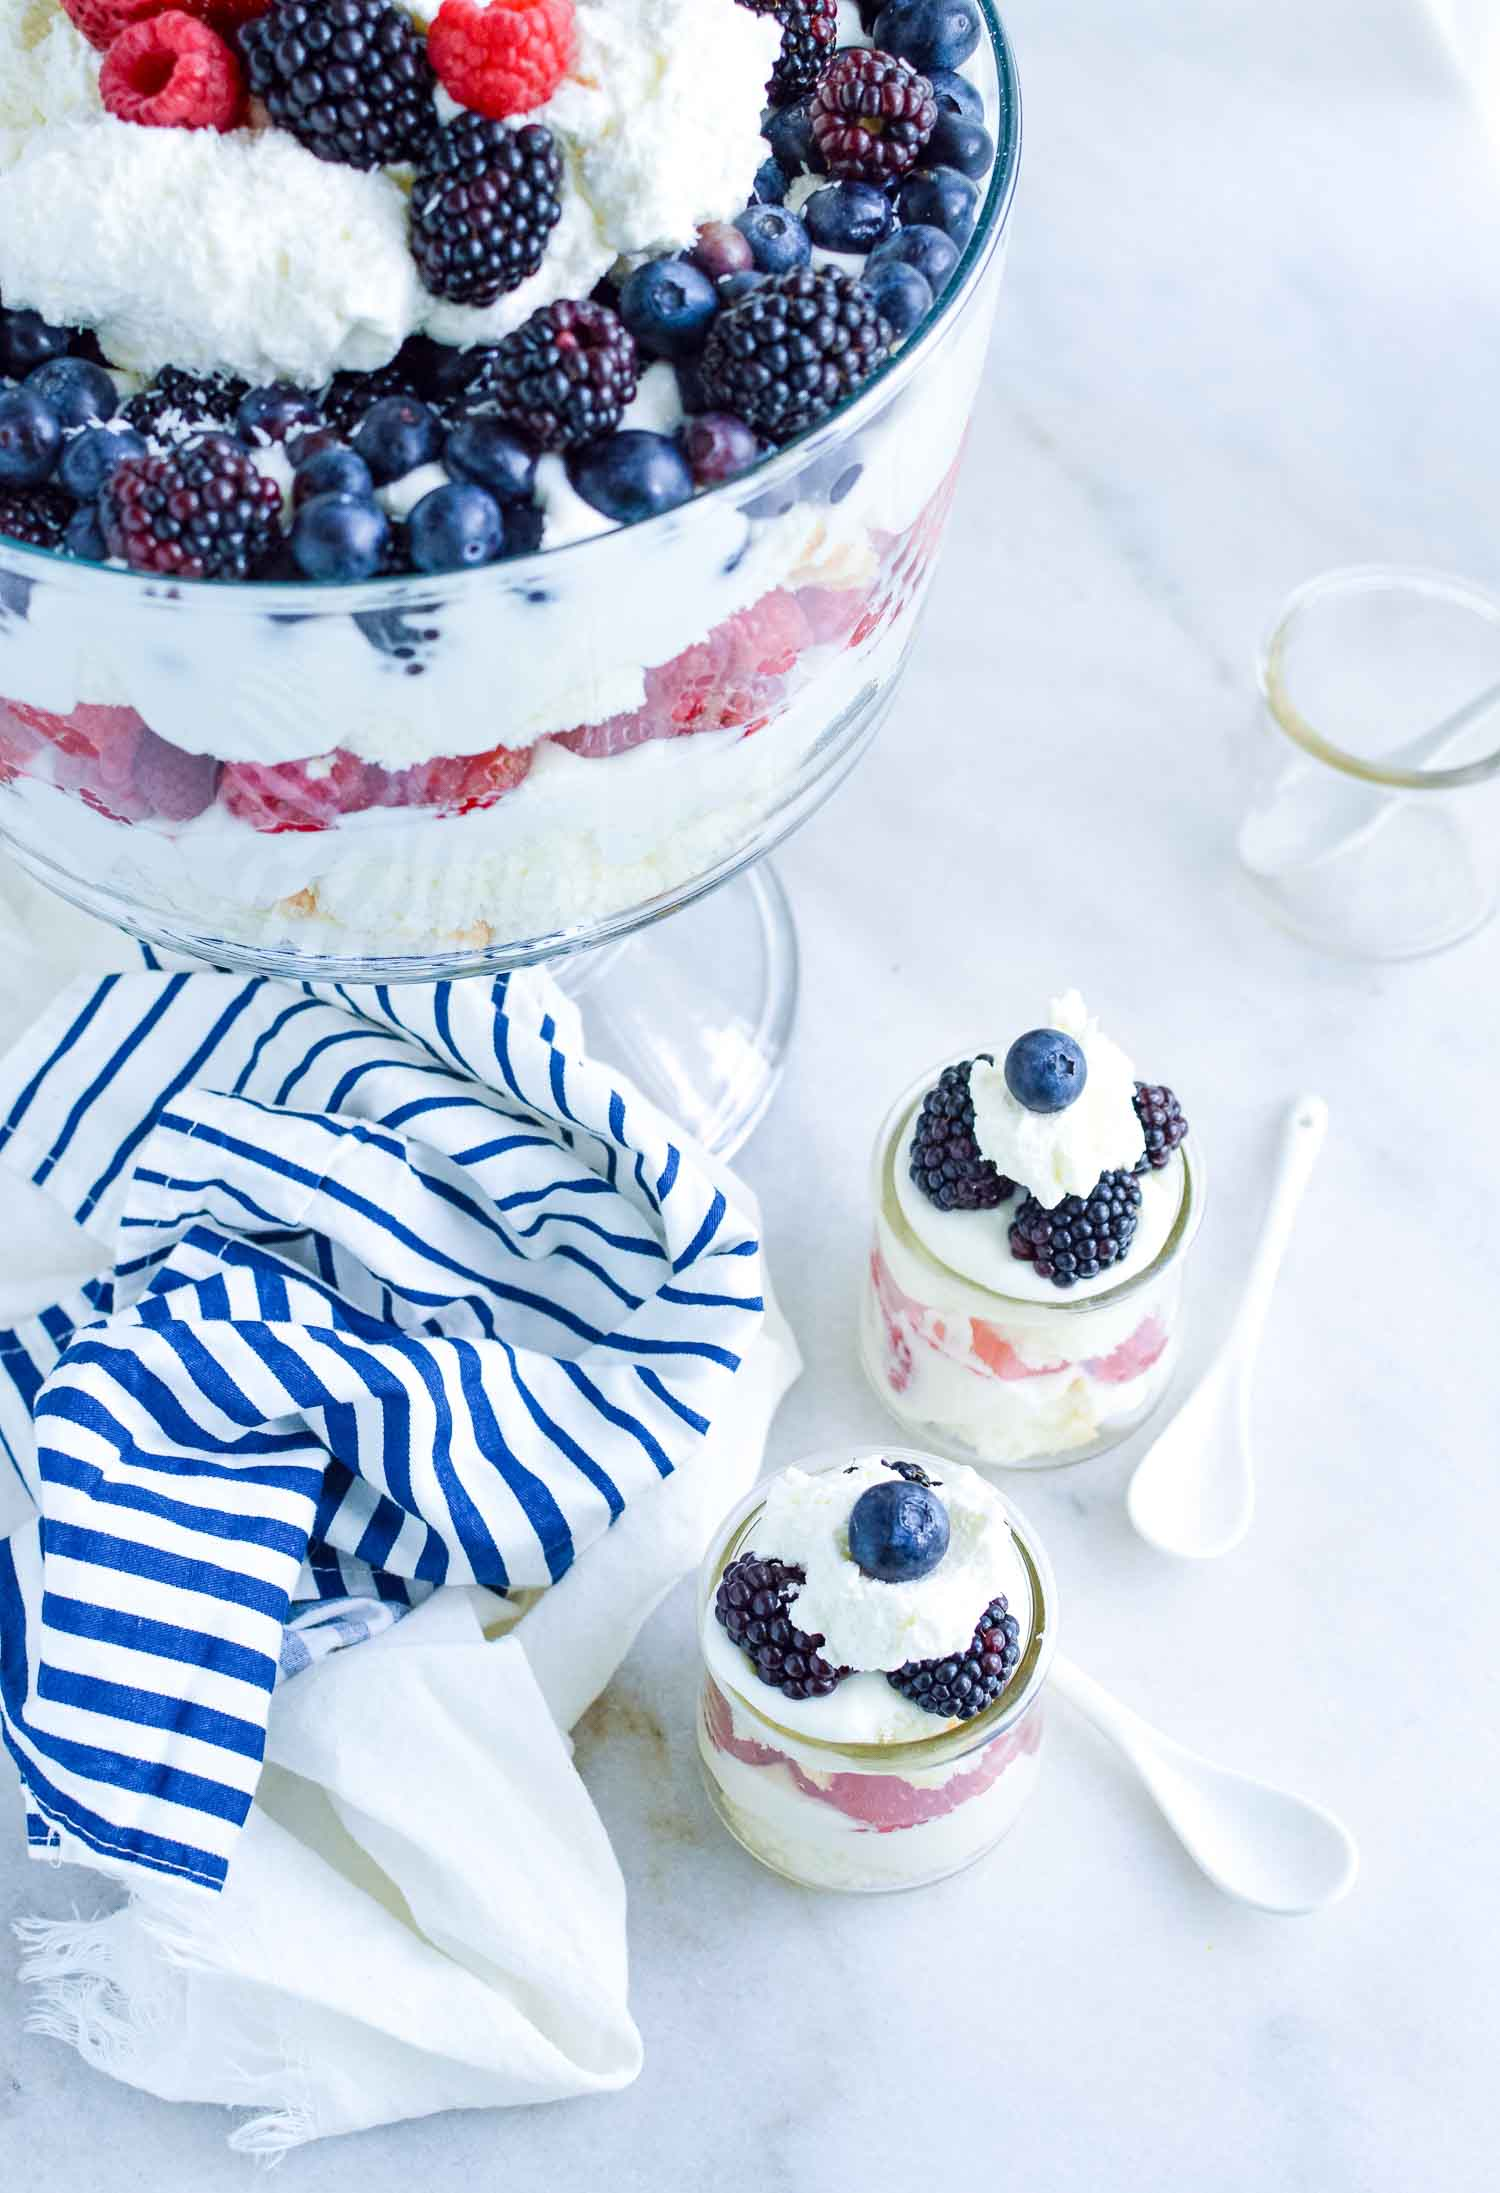 A clear glass trifle dish filled with cake, berries, and cream with a blue and white towel around the bottom and two filled glass cups and one empty glass cup with white spoons.